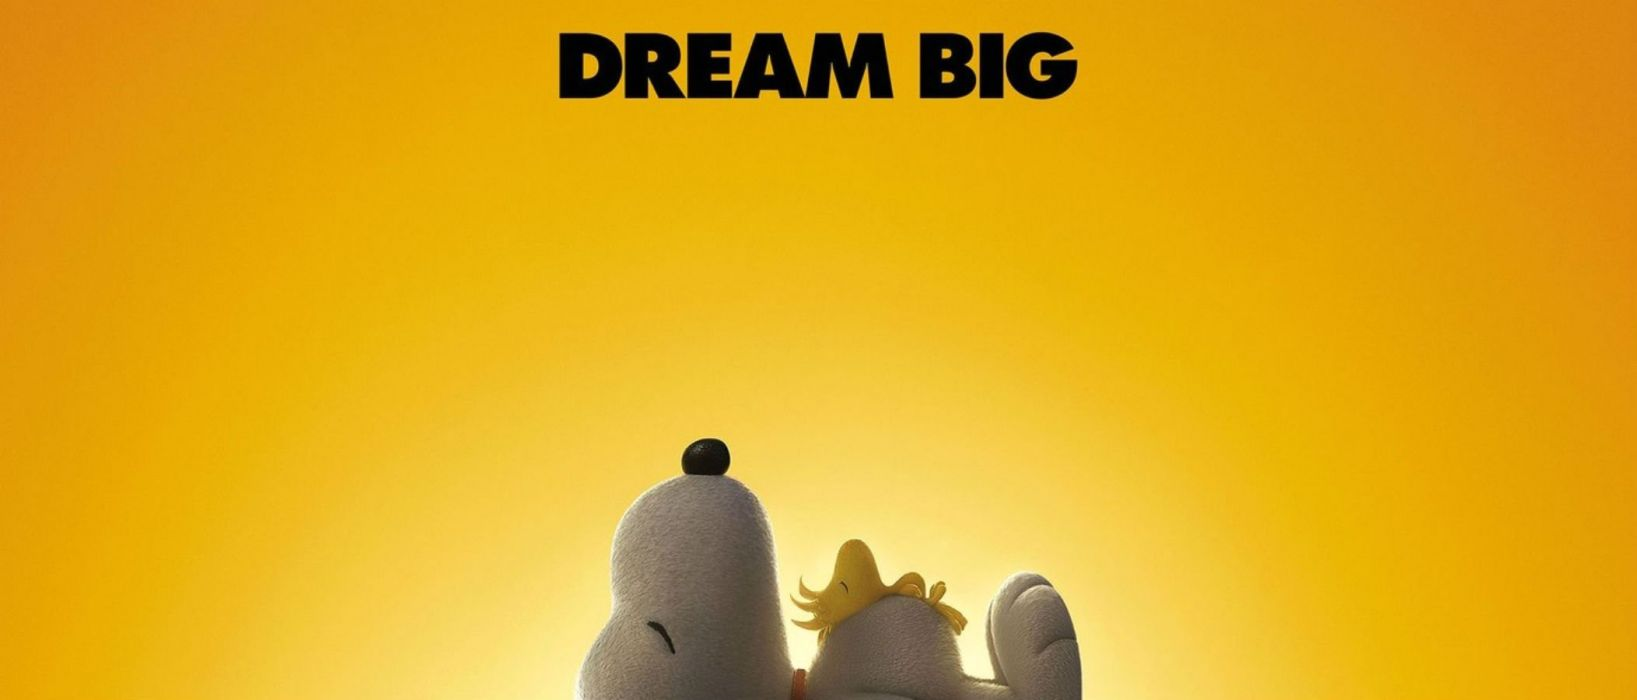 Cute Wallpapers For Desktop 3d Peanuts Movie Animation Family Snoopy Comedy Cgi Wallpaper